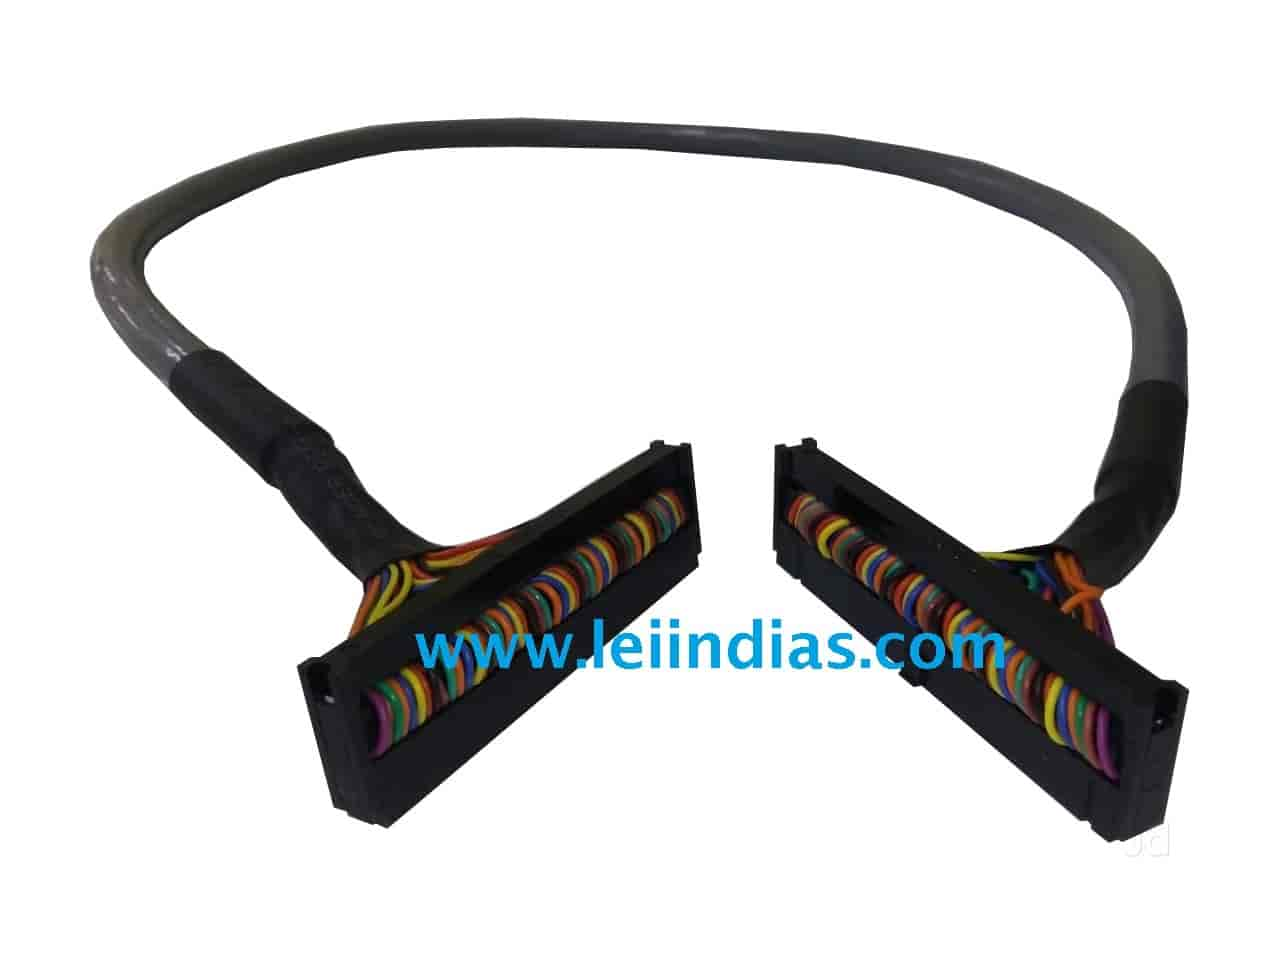 hight resolution of wire lei indias wire harness manufacturer photos viman nagar pune industry wire